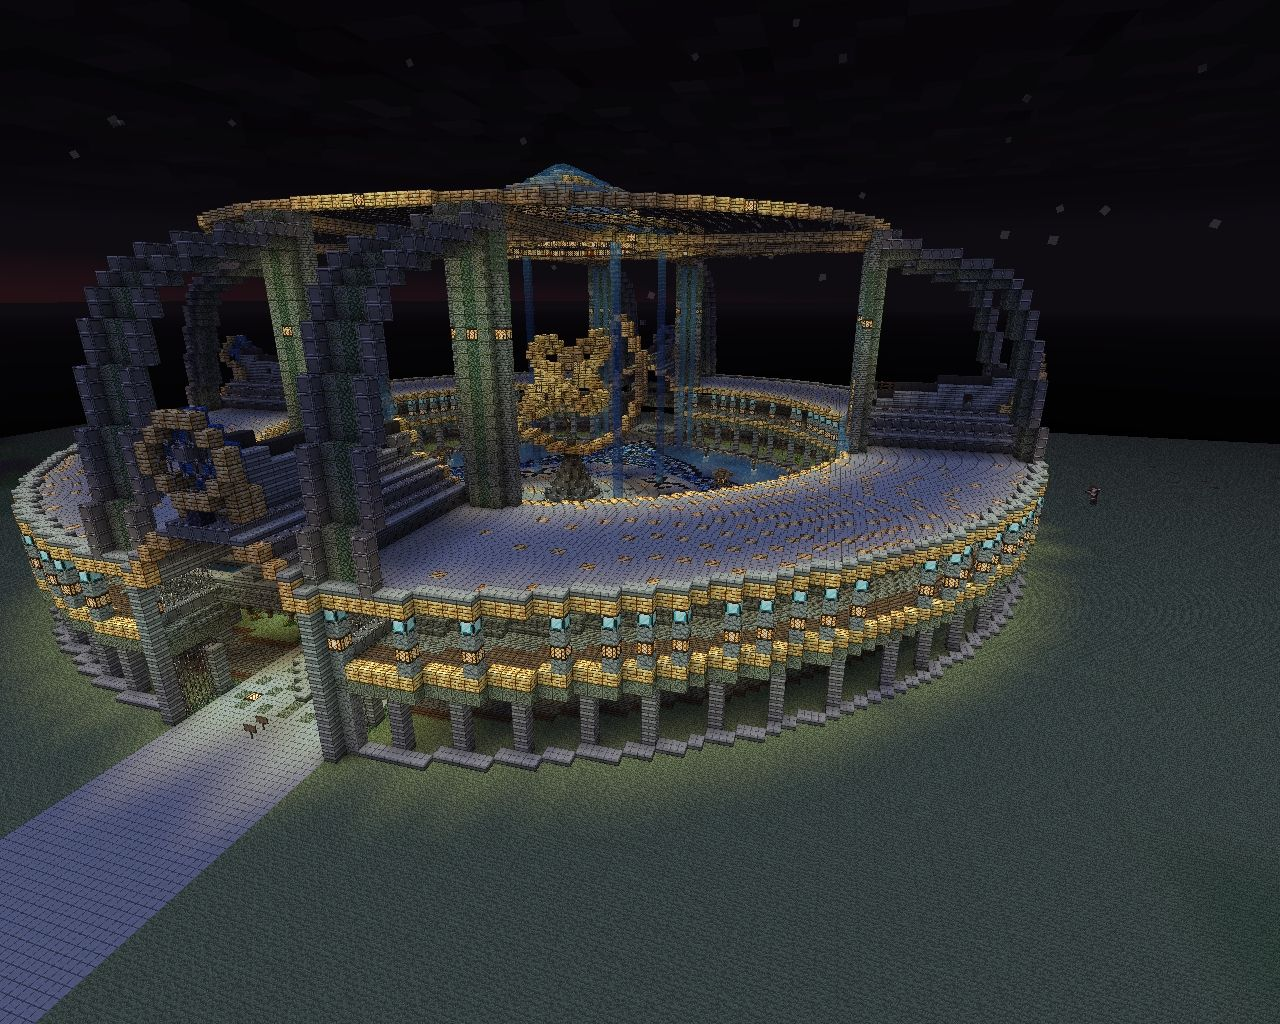 This is our current project we are building a city and this is going to be the center